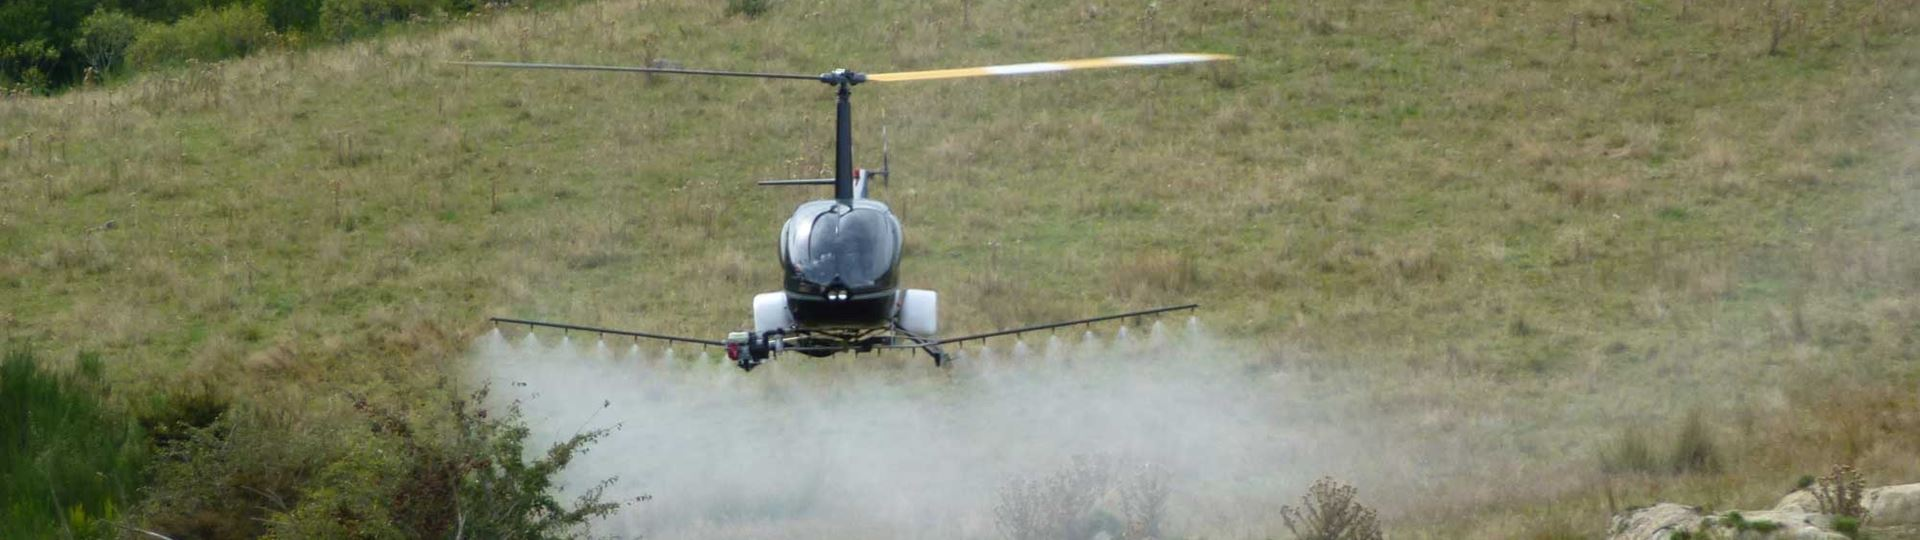 Spraying/Sowing